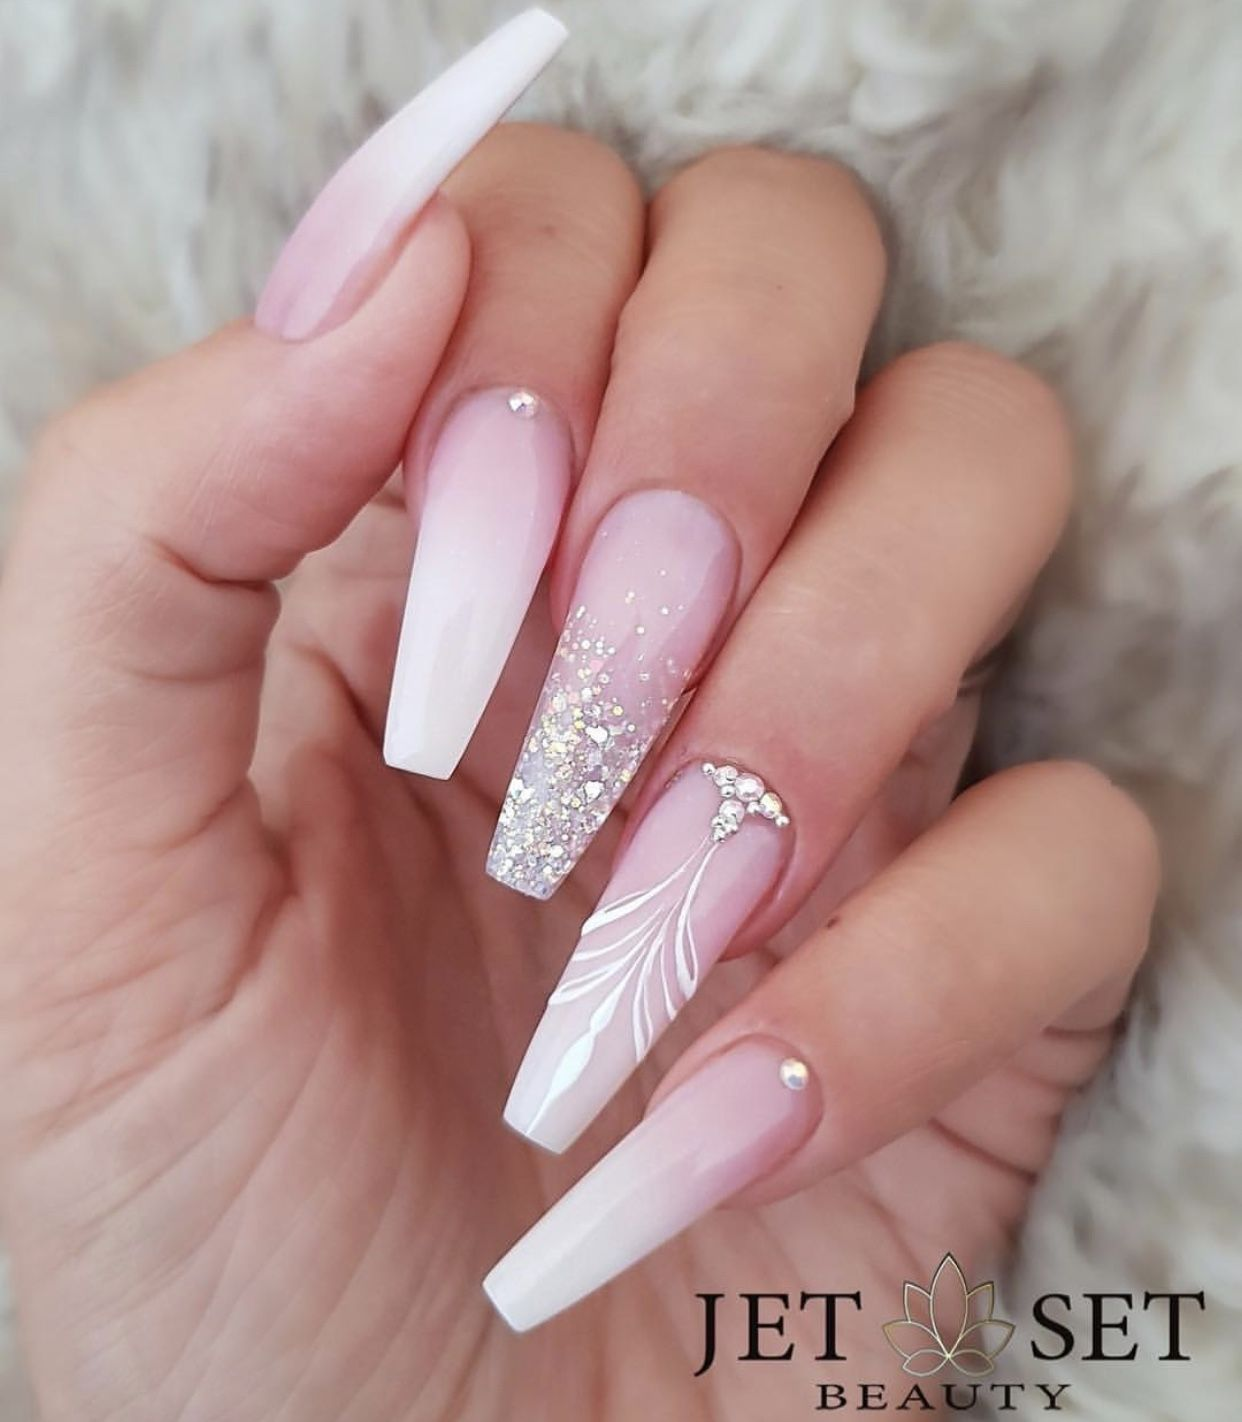 Pin By Angelina On Wedding In 2020 Bride Nails Pink Acrylic Nails Cute Acrylic Nails